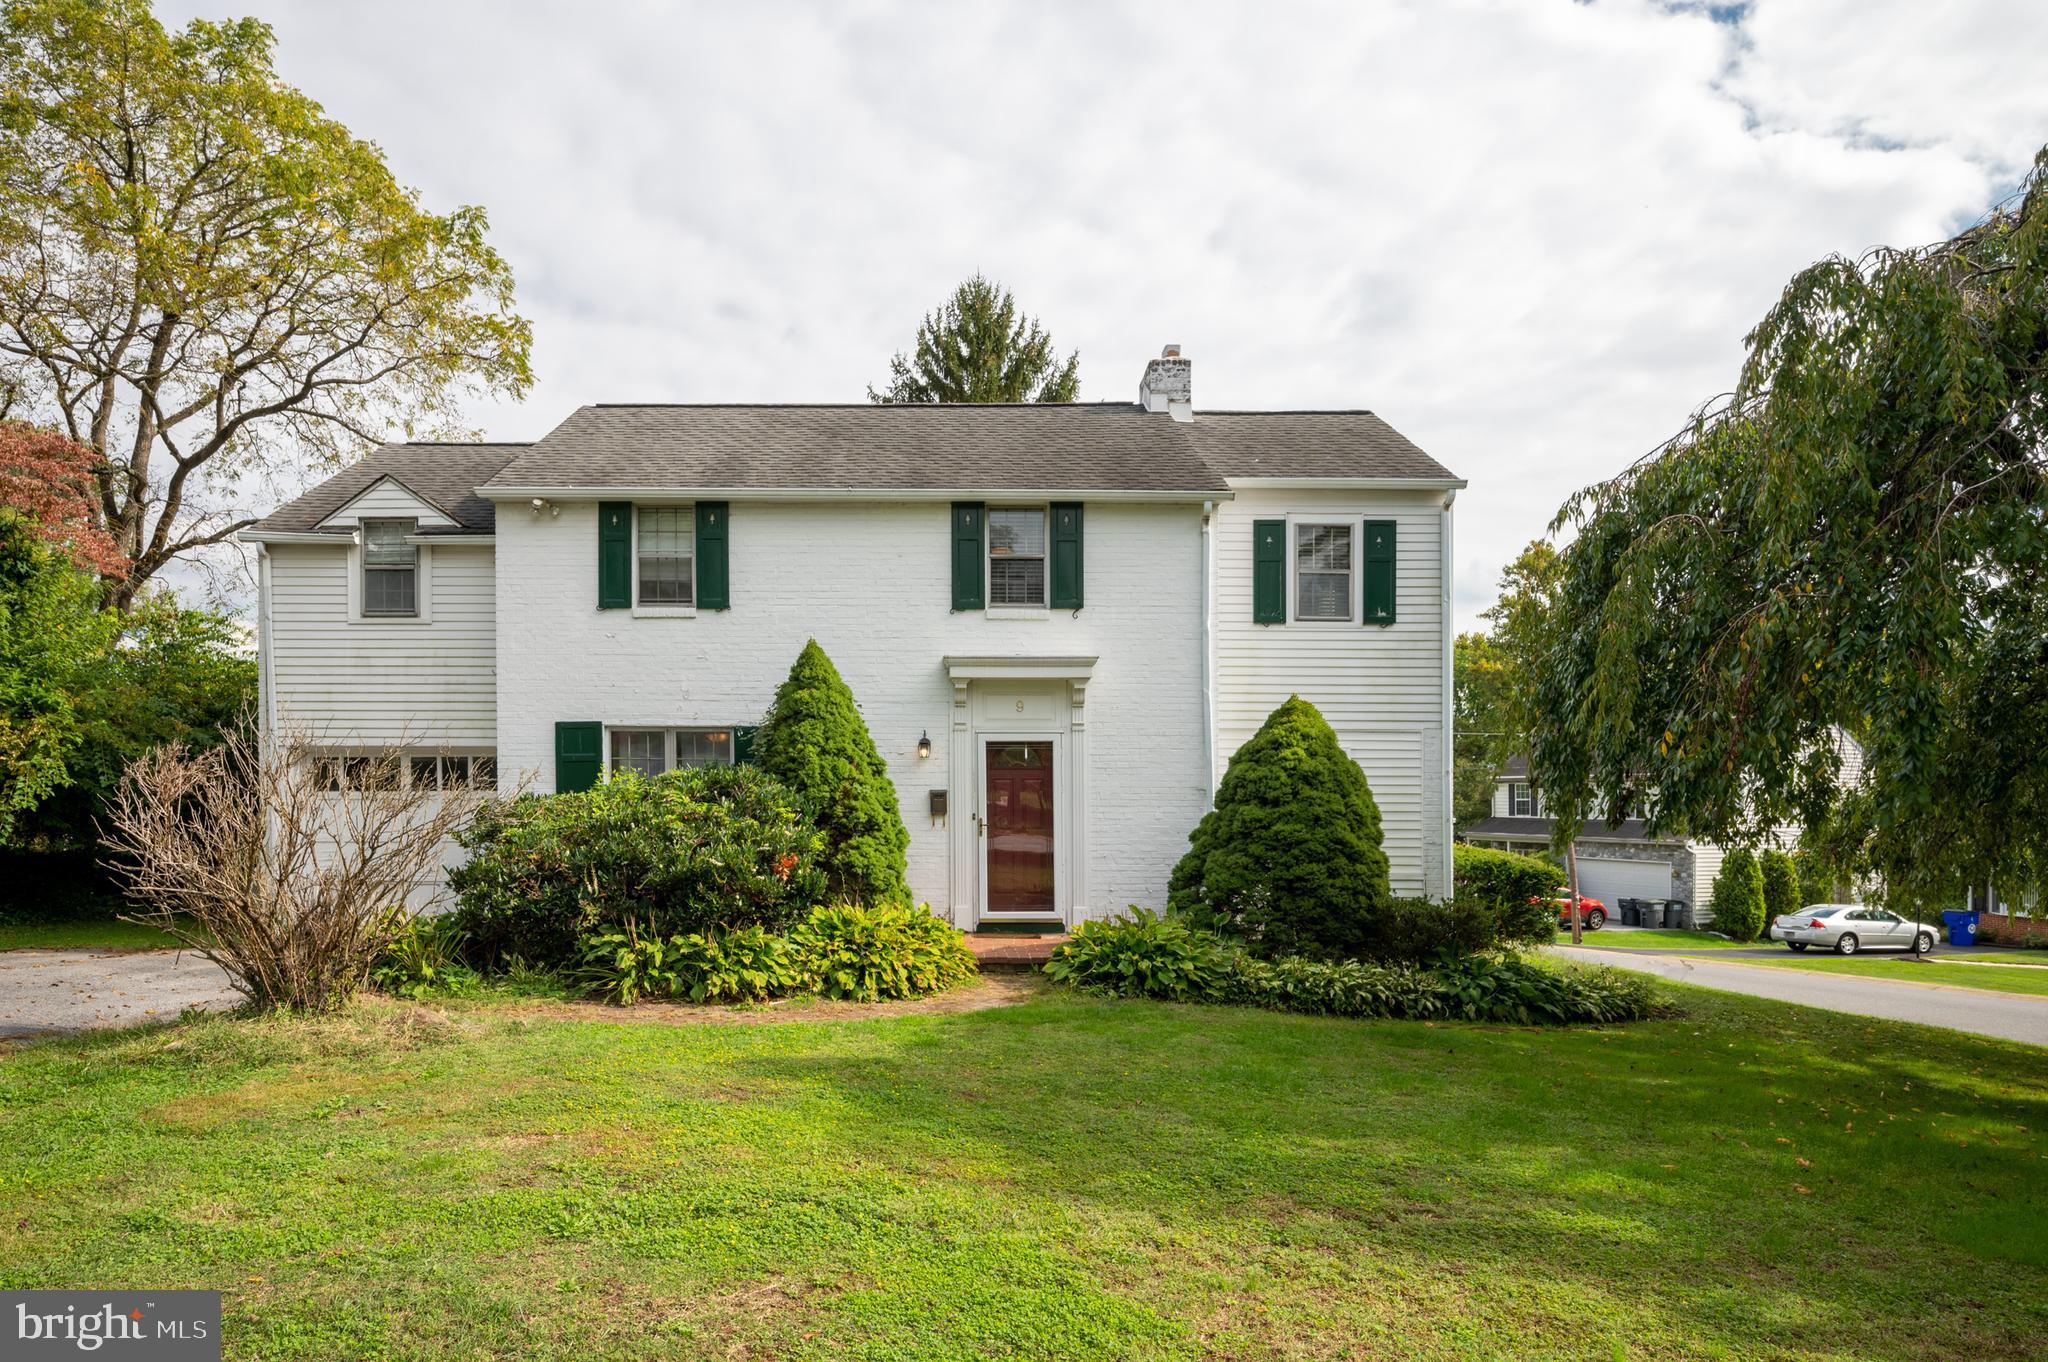 Beautiful colonial in Delaire!  Sitting on a spacious corner lot, this home features two large living spaces on the main floor, both with fireplace - in addition to the dining room, kitchen, another eating area, and powder room.  There is also a porch of the living room that the current owner started to finish, great for an office, exercise area, or play room.   Upstairs you'll find a spacious master bedroom with adjacent sitting room, and generous master bath.   Two more bedrooms on this level and another full bath.   Other amenities include a new air conditioner, one car garage, and basement.  Conveniently located near Philadelphia Pike, I-495, I-95 and numerous shopping and restaurant options.  Don't wait!  Make your appointment to see this home today!